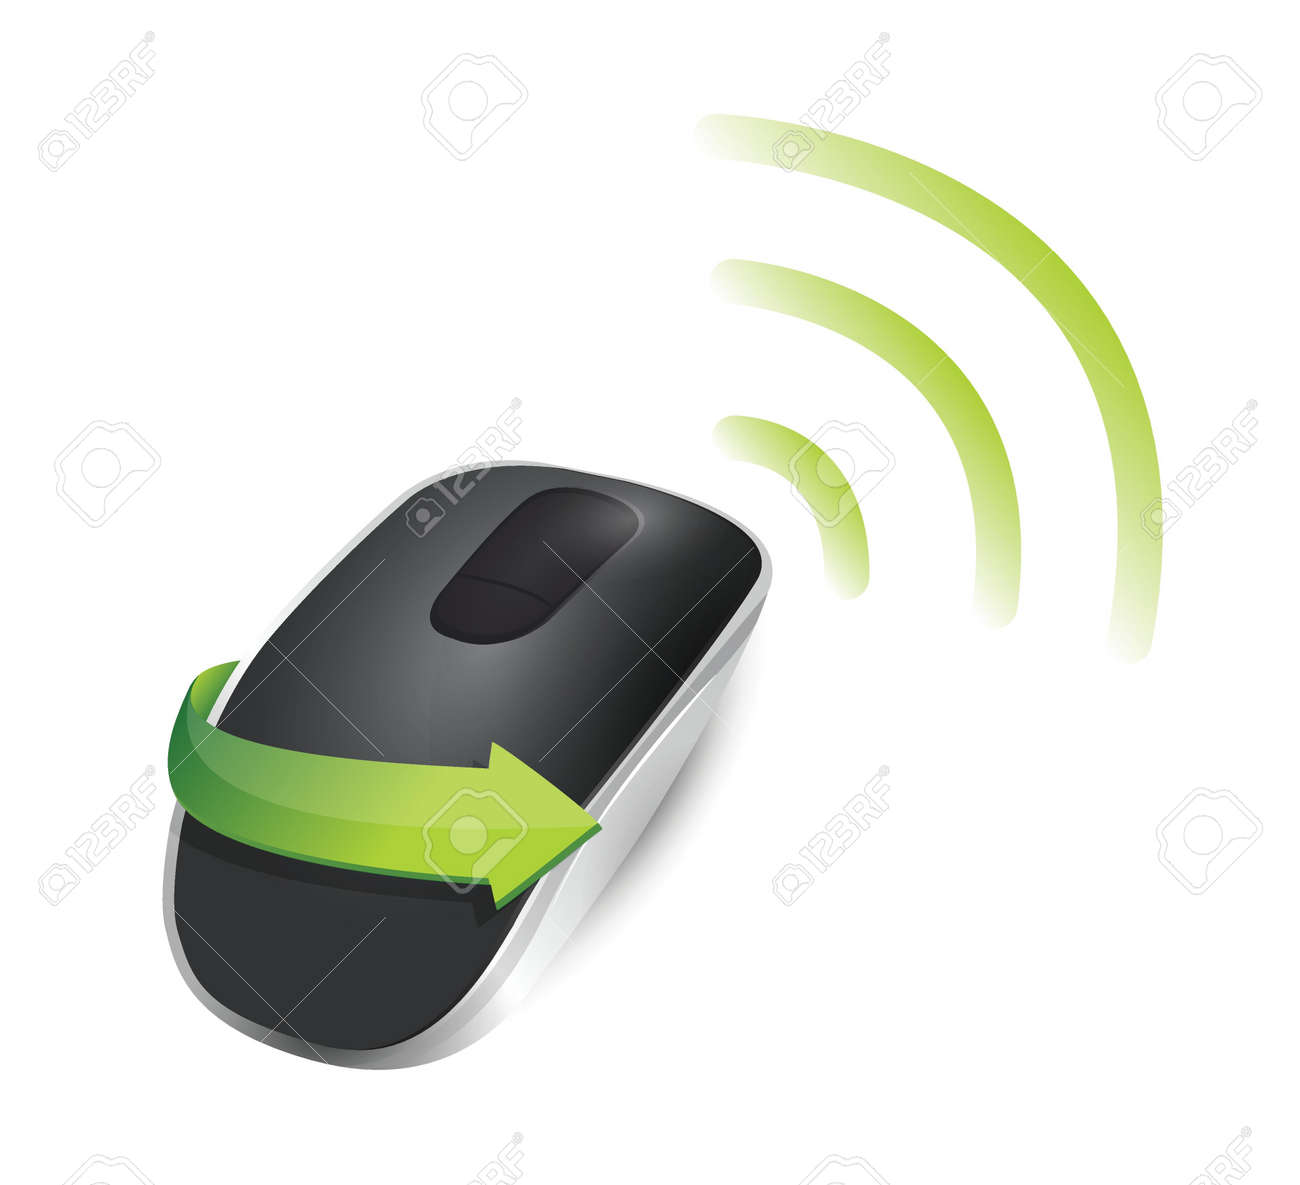 wifi Wireless computer mouse isolated on white background Stock Vector - 18913062